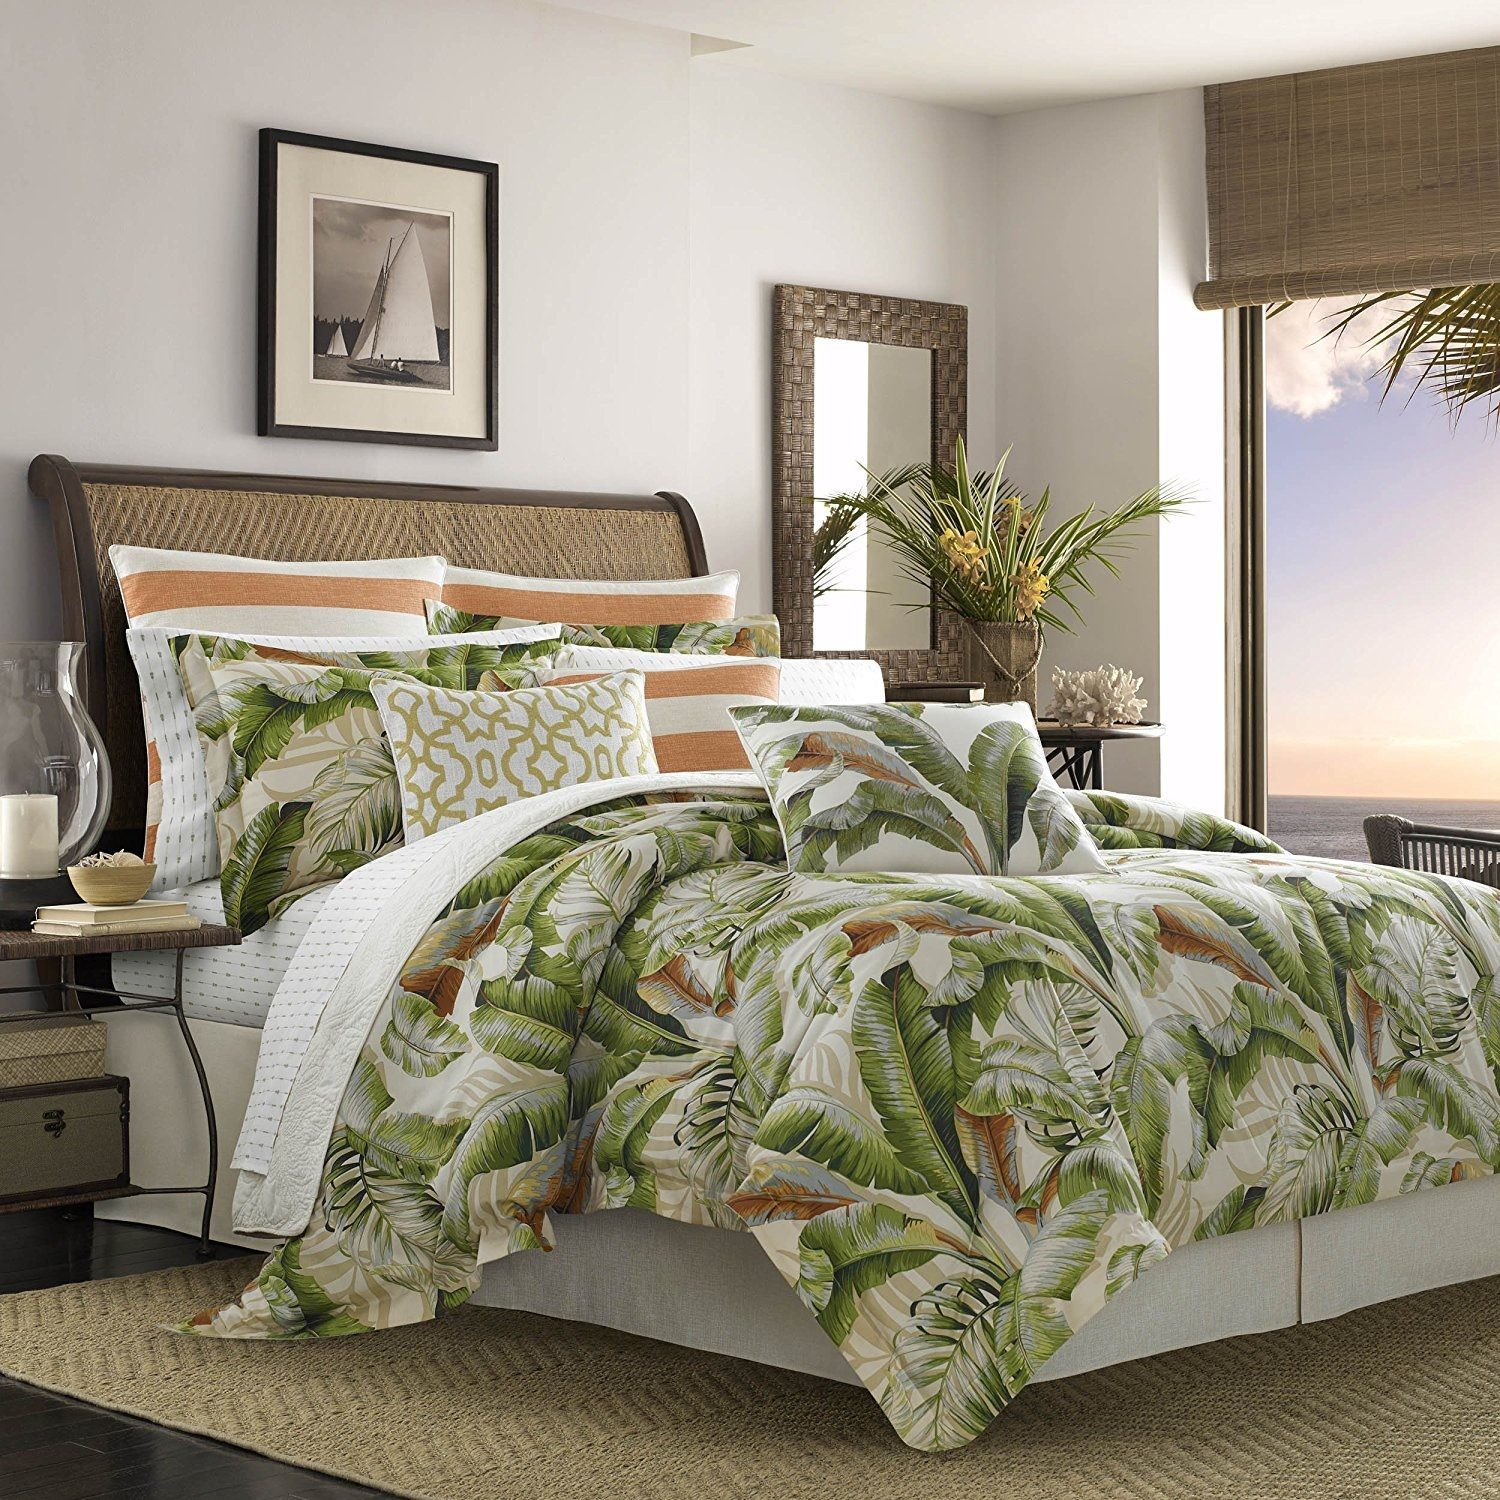 Tropical Bedding Sets Discover The Best Themed Comforters Quilts